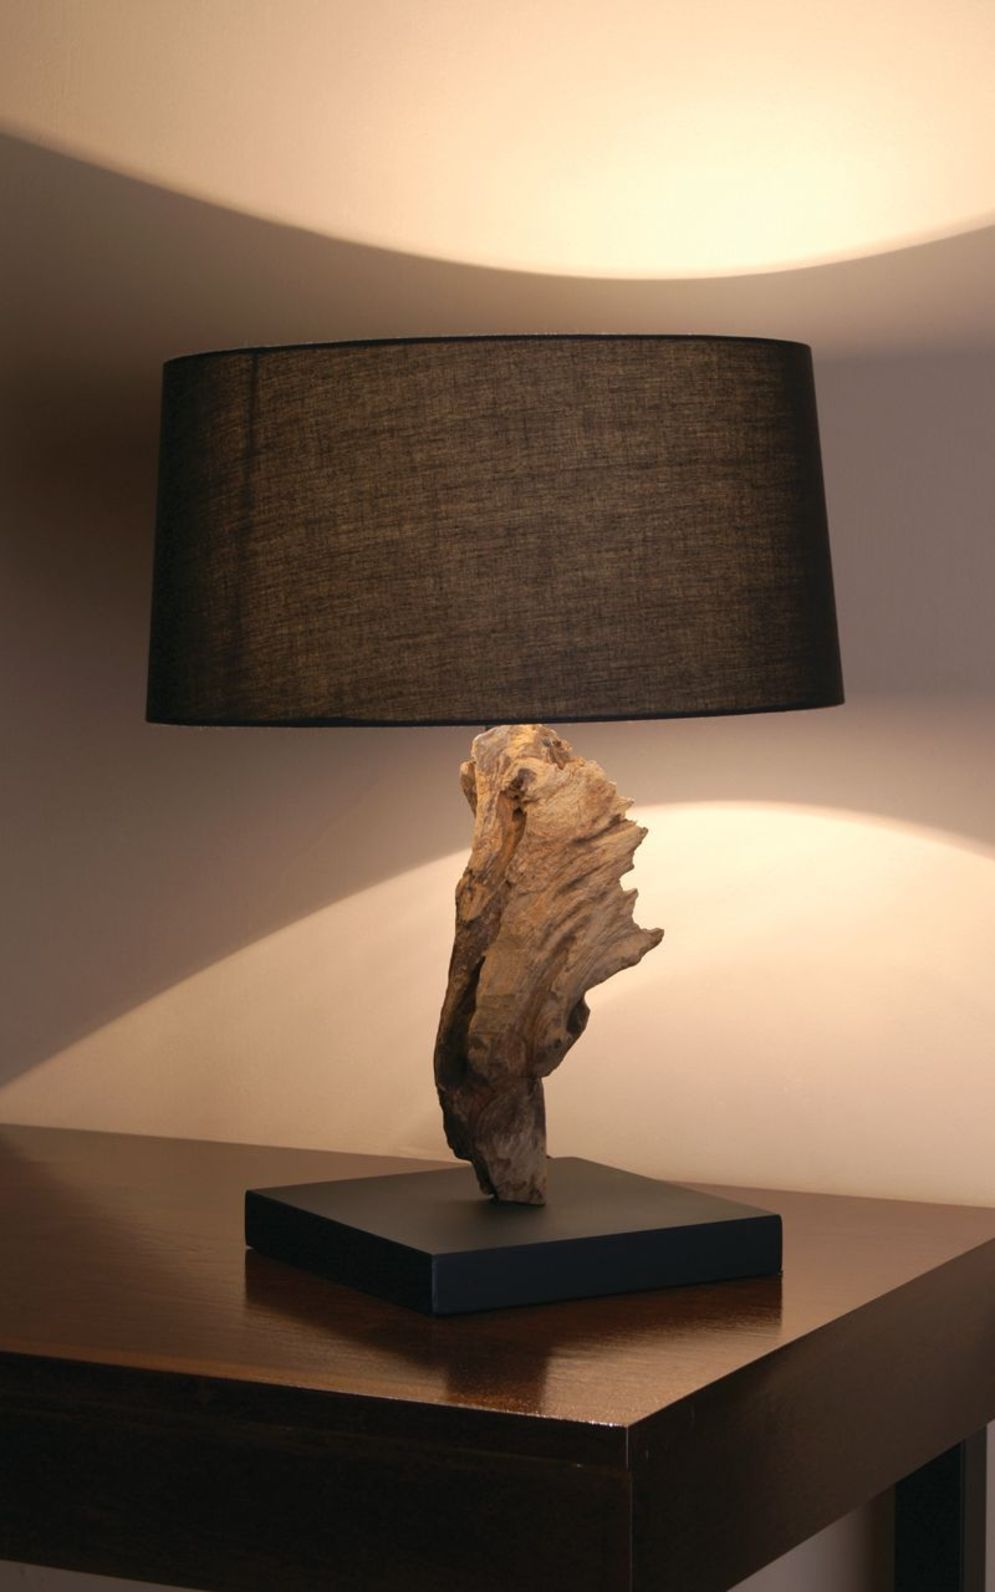 Awesome driftwood lamp stands giving authentic decoration in natural art style Image 3